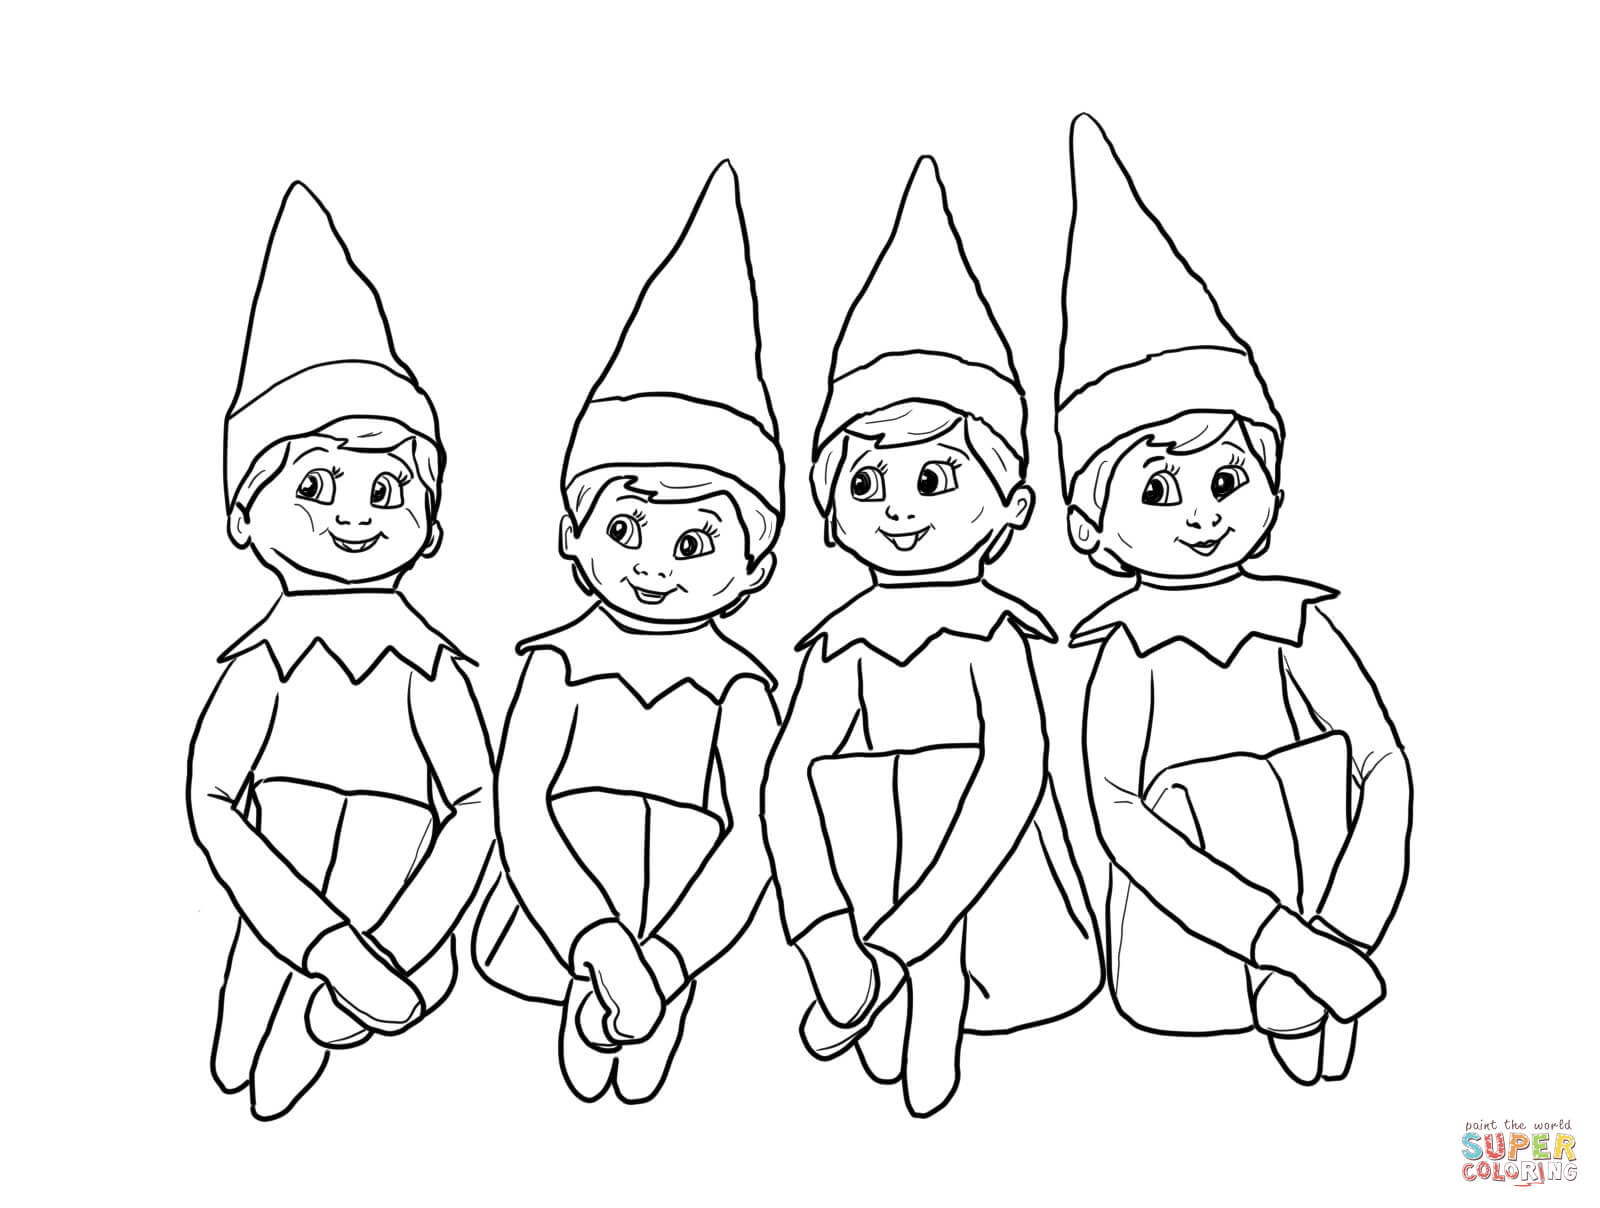 graphic about Elf on the Shelf Printable Coloring Pages identified as Elf Upon The Shelf Coloring Internet pages Elves Upon The Shelf Coloring